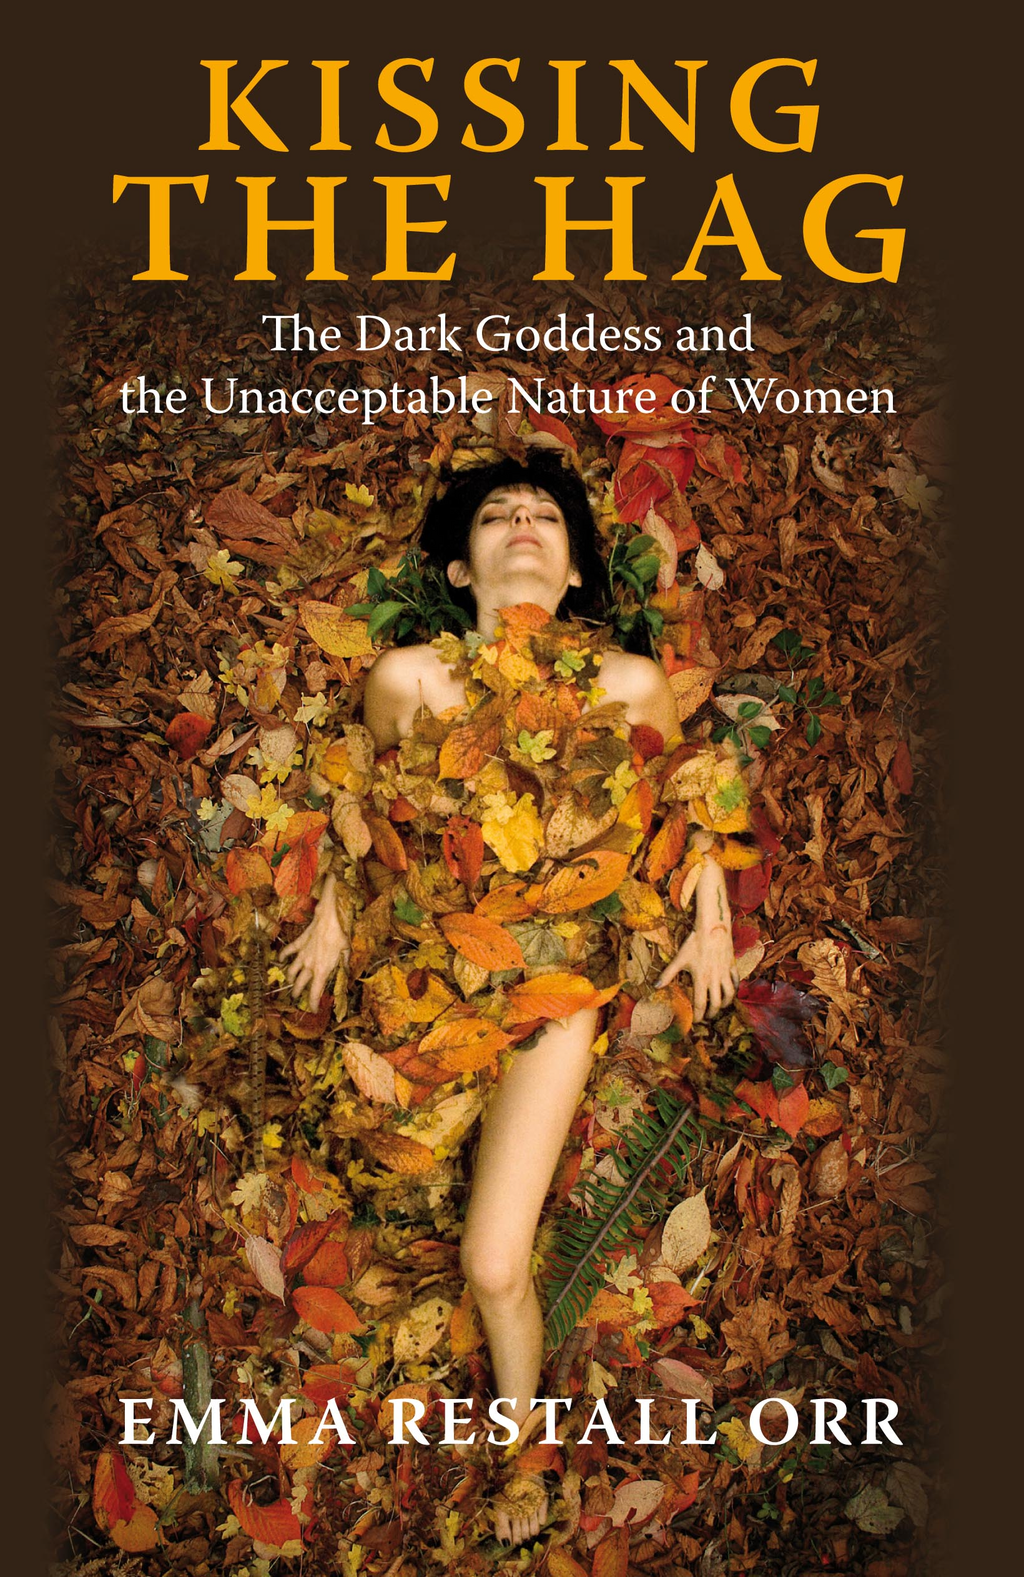 Kissing the Hag: The Dark Goddess and the Unacceptable Nature of Women By: Emma Restall Orr